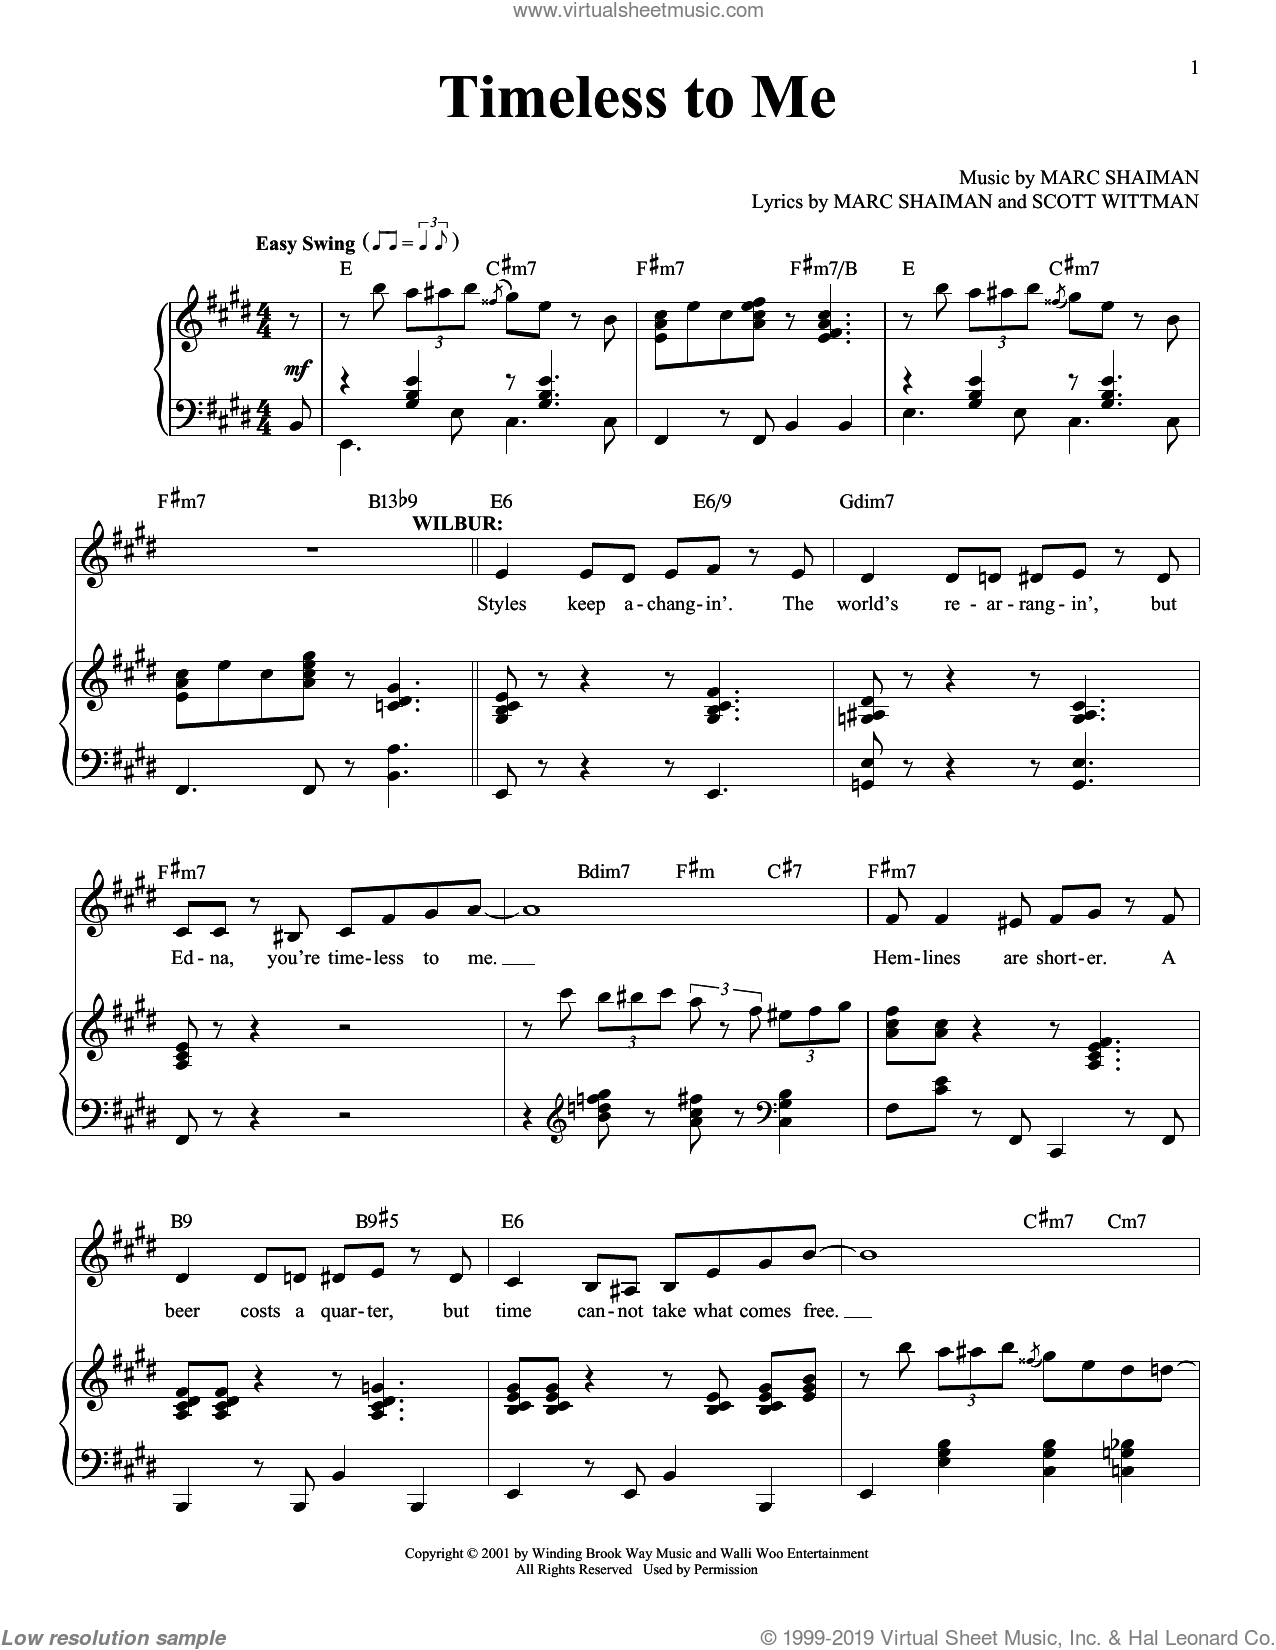 Timeless To Me sheet music for voice and piano by Marc Shaiman and Scott Wittman, classical score, intermediate skill level